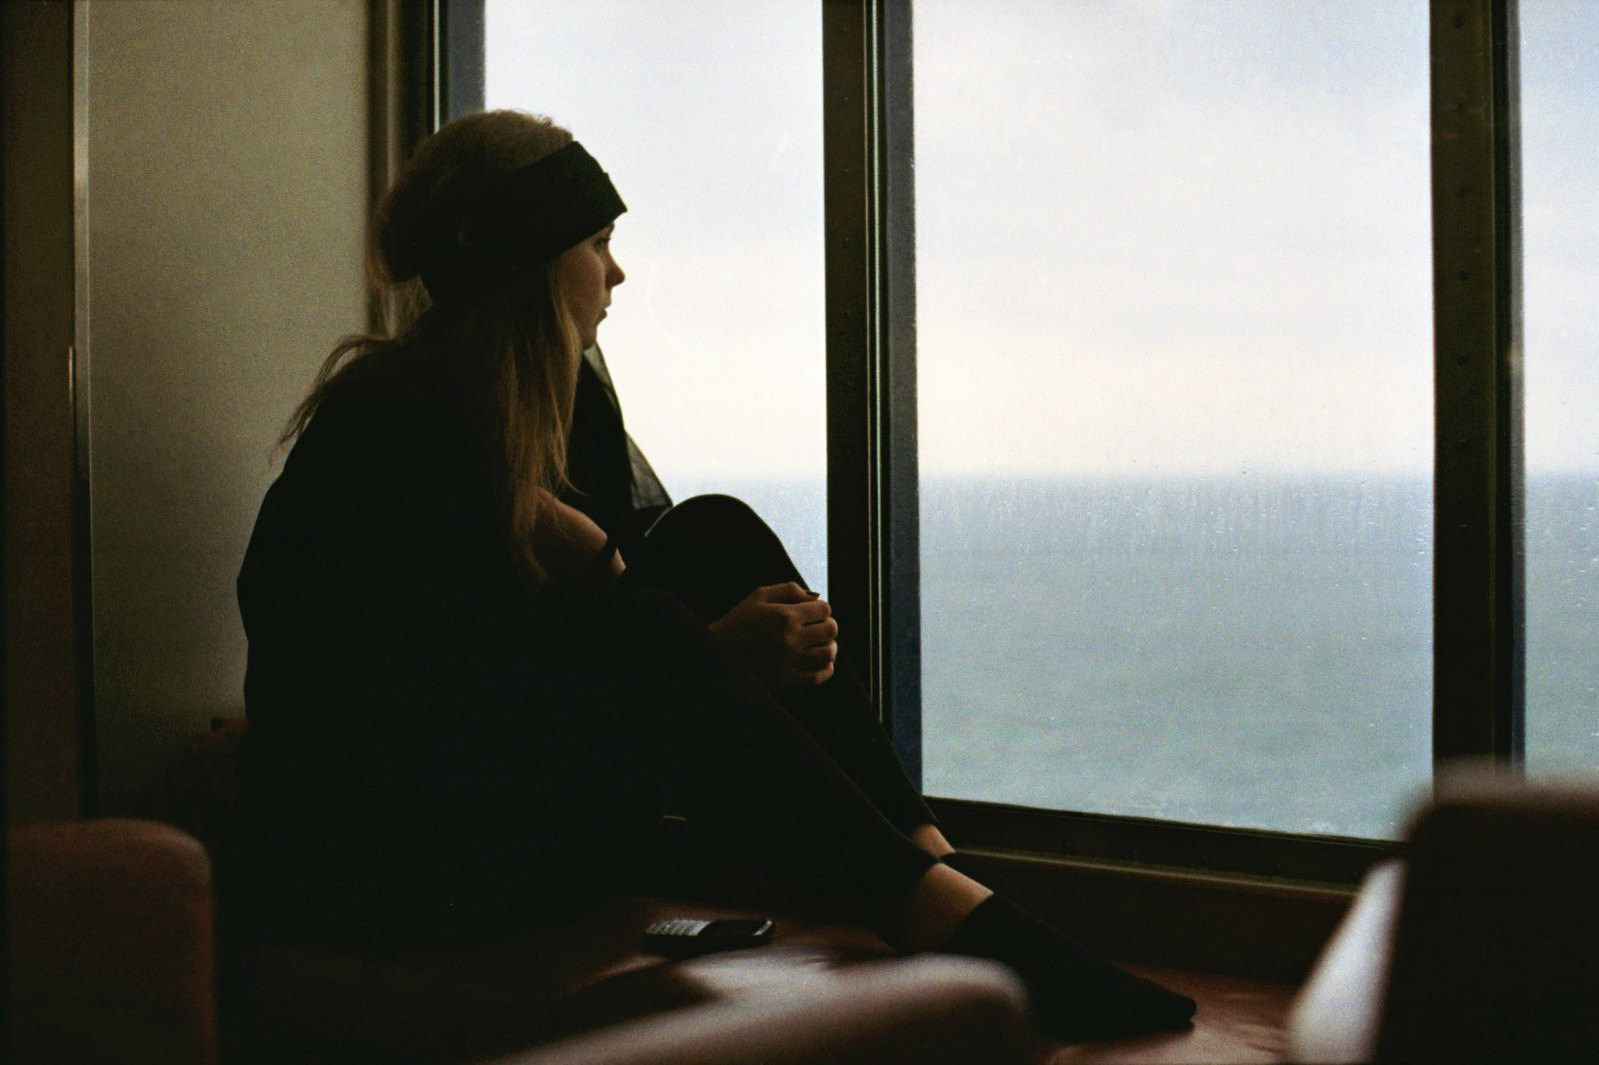 Le Love Blog Photo Girl Sitting On Window Seat Sill Looking Out Thinking Apology Letter Fell In Love With Their Best Friend Hindsight Lessons Learned Untitled by Sophie Ha, on Flickr